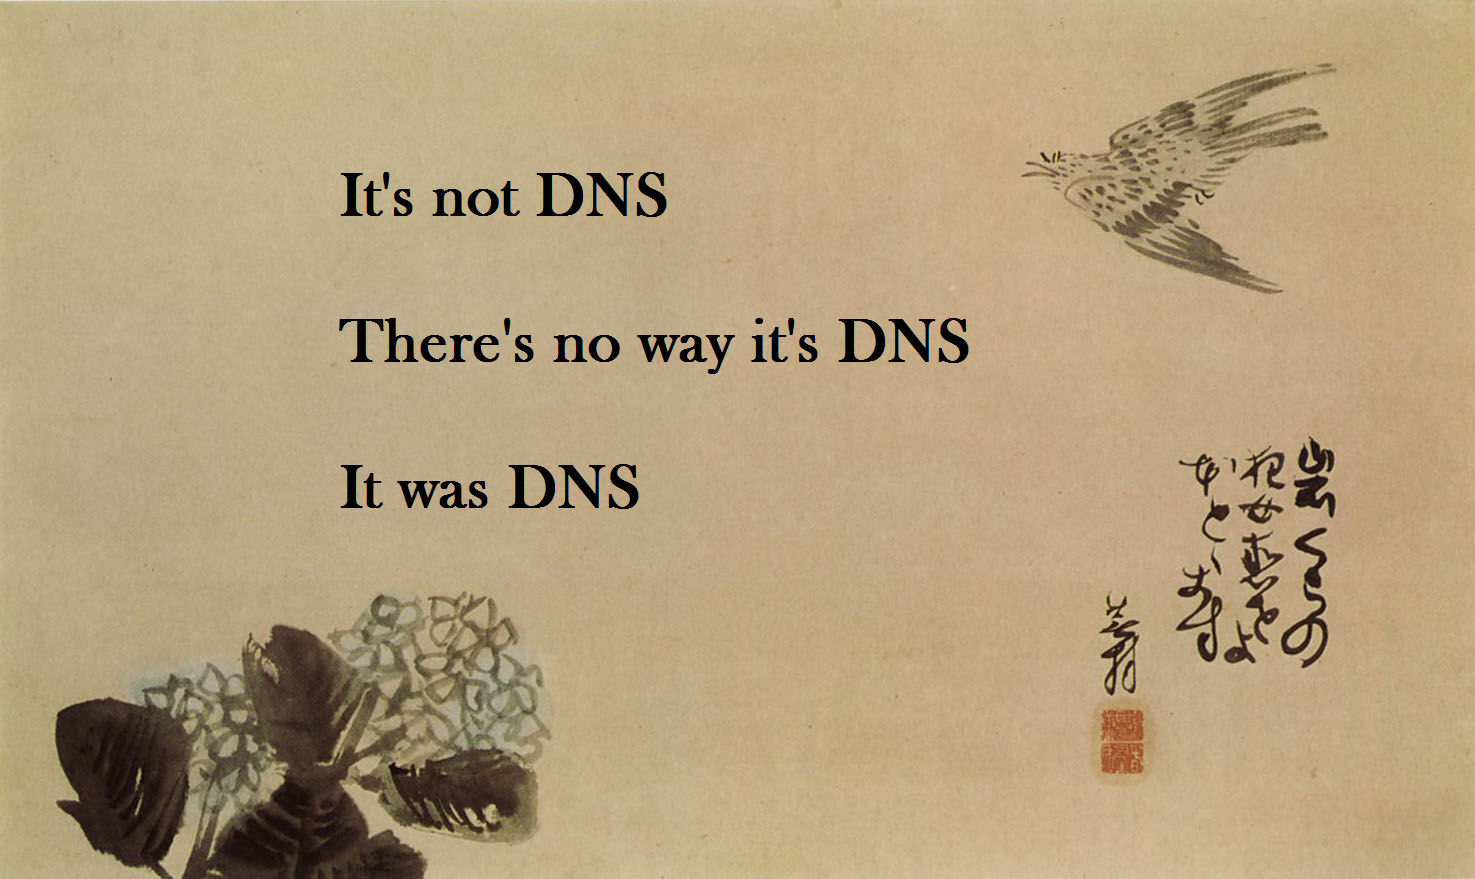 It's always DNS.